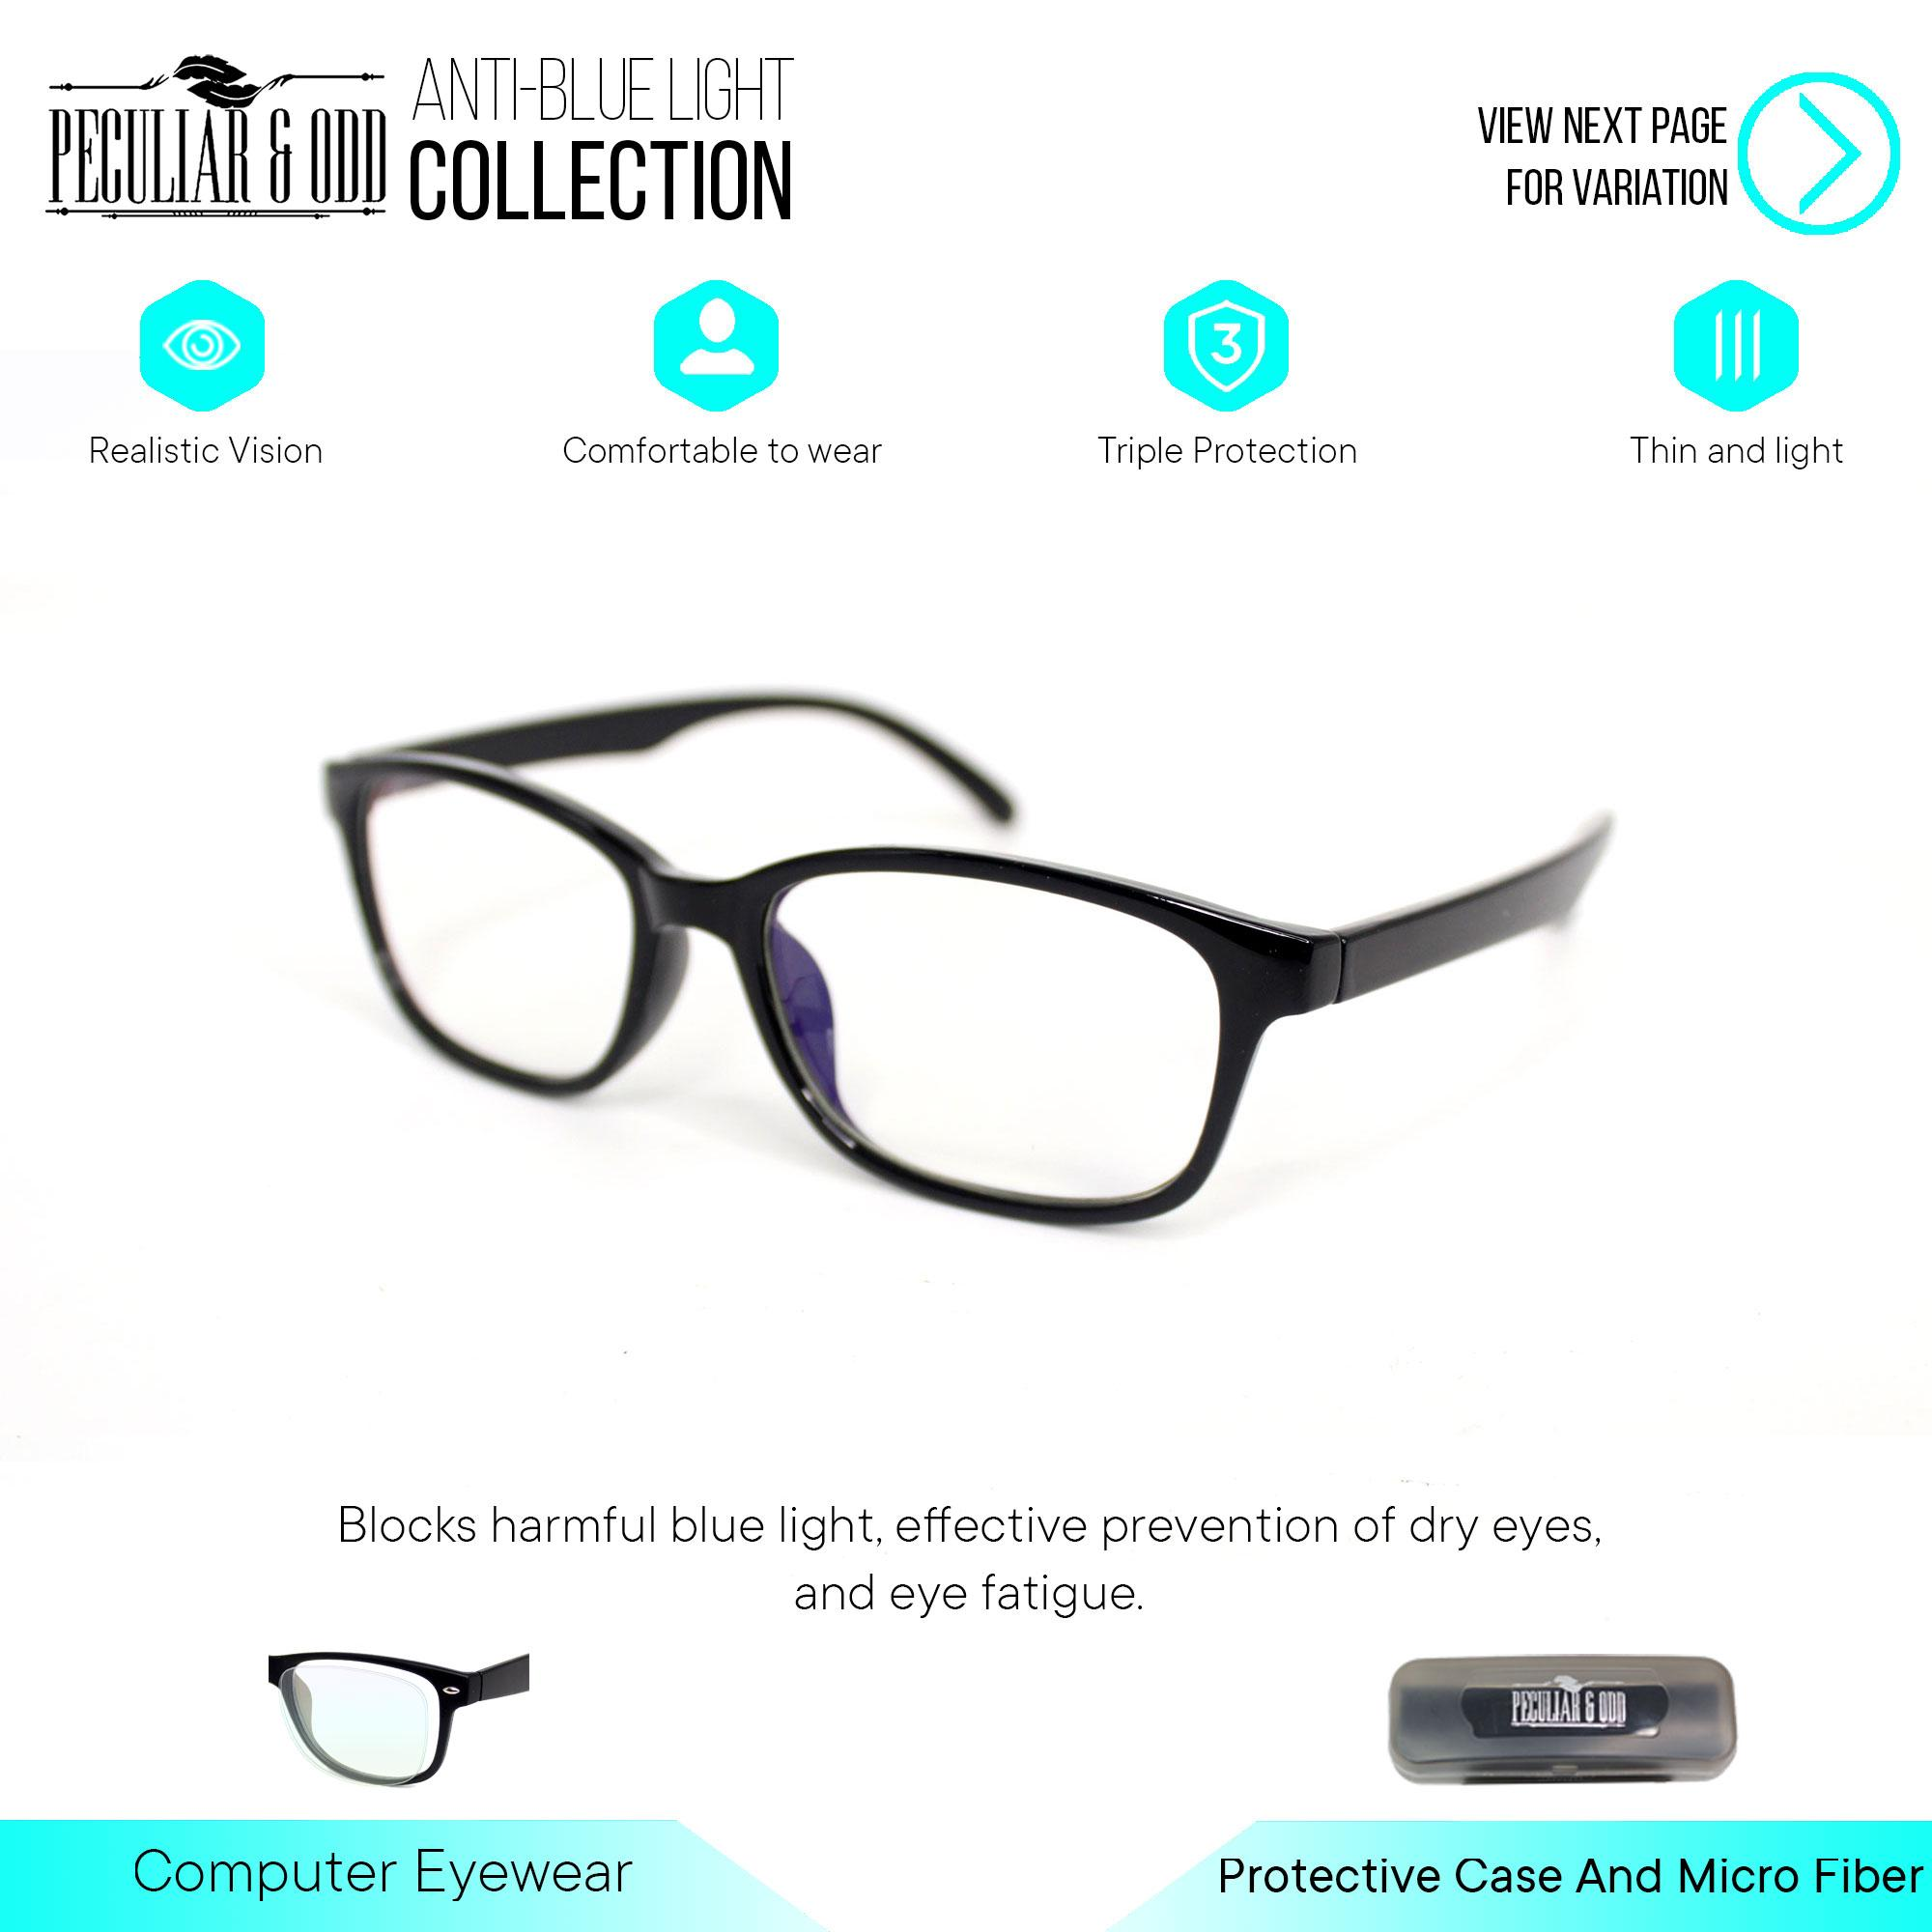 ba3d4c55d45e7 Peculiar Square 3028 CoalBlackClear Anti Radiation Computer Eyeglass  Optical Replaceable Eyewear Unisex new